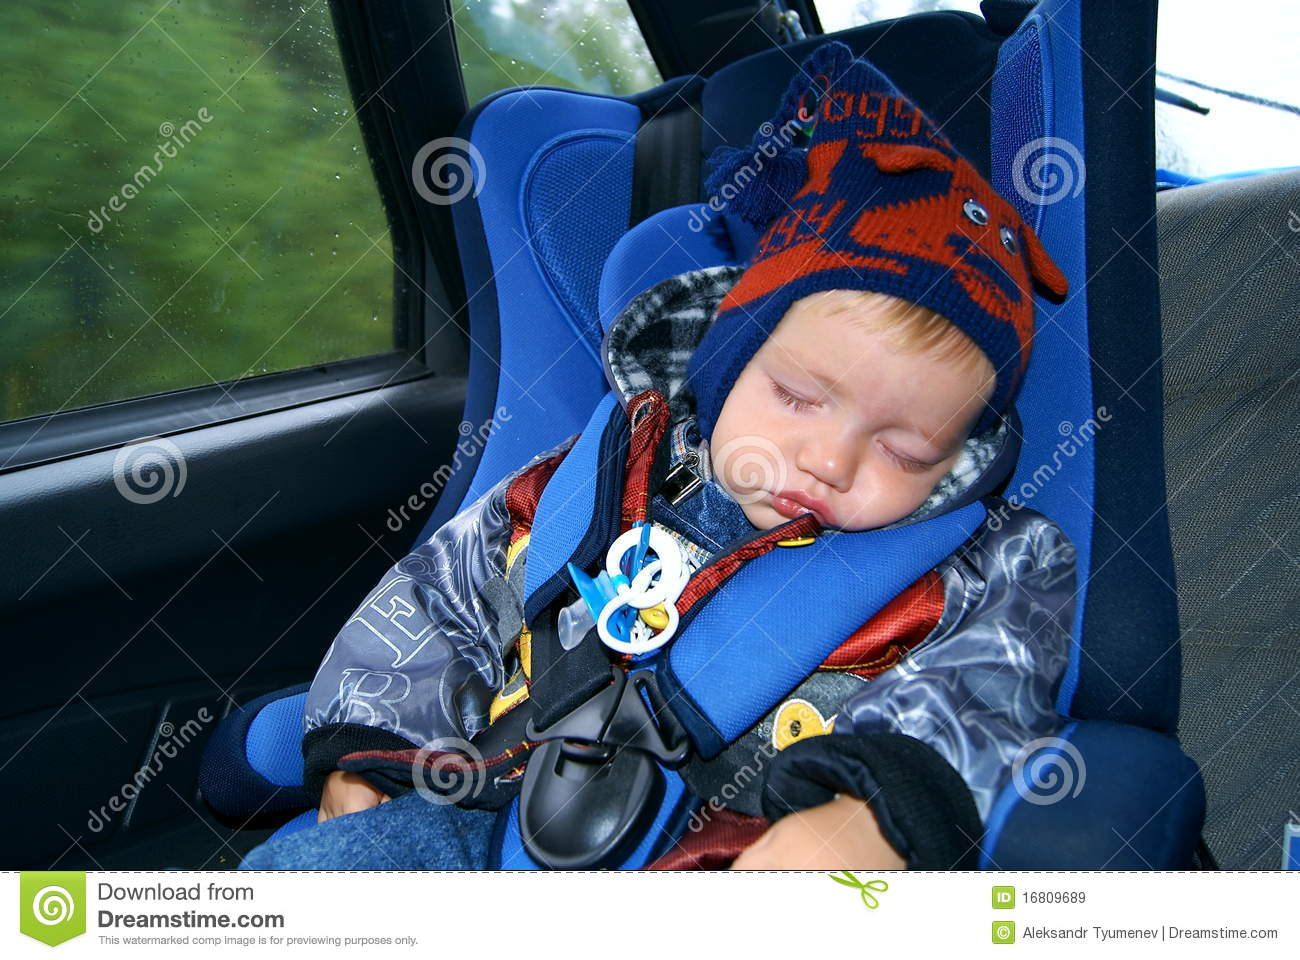 The child sleeps in the car